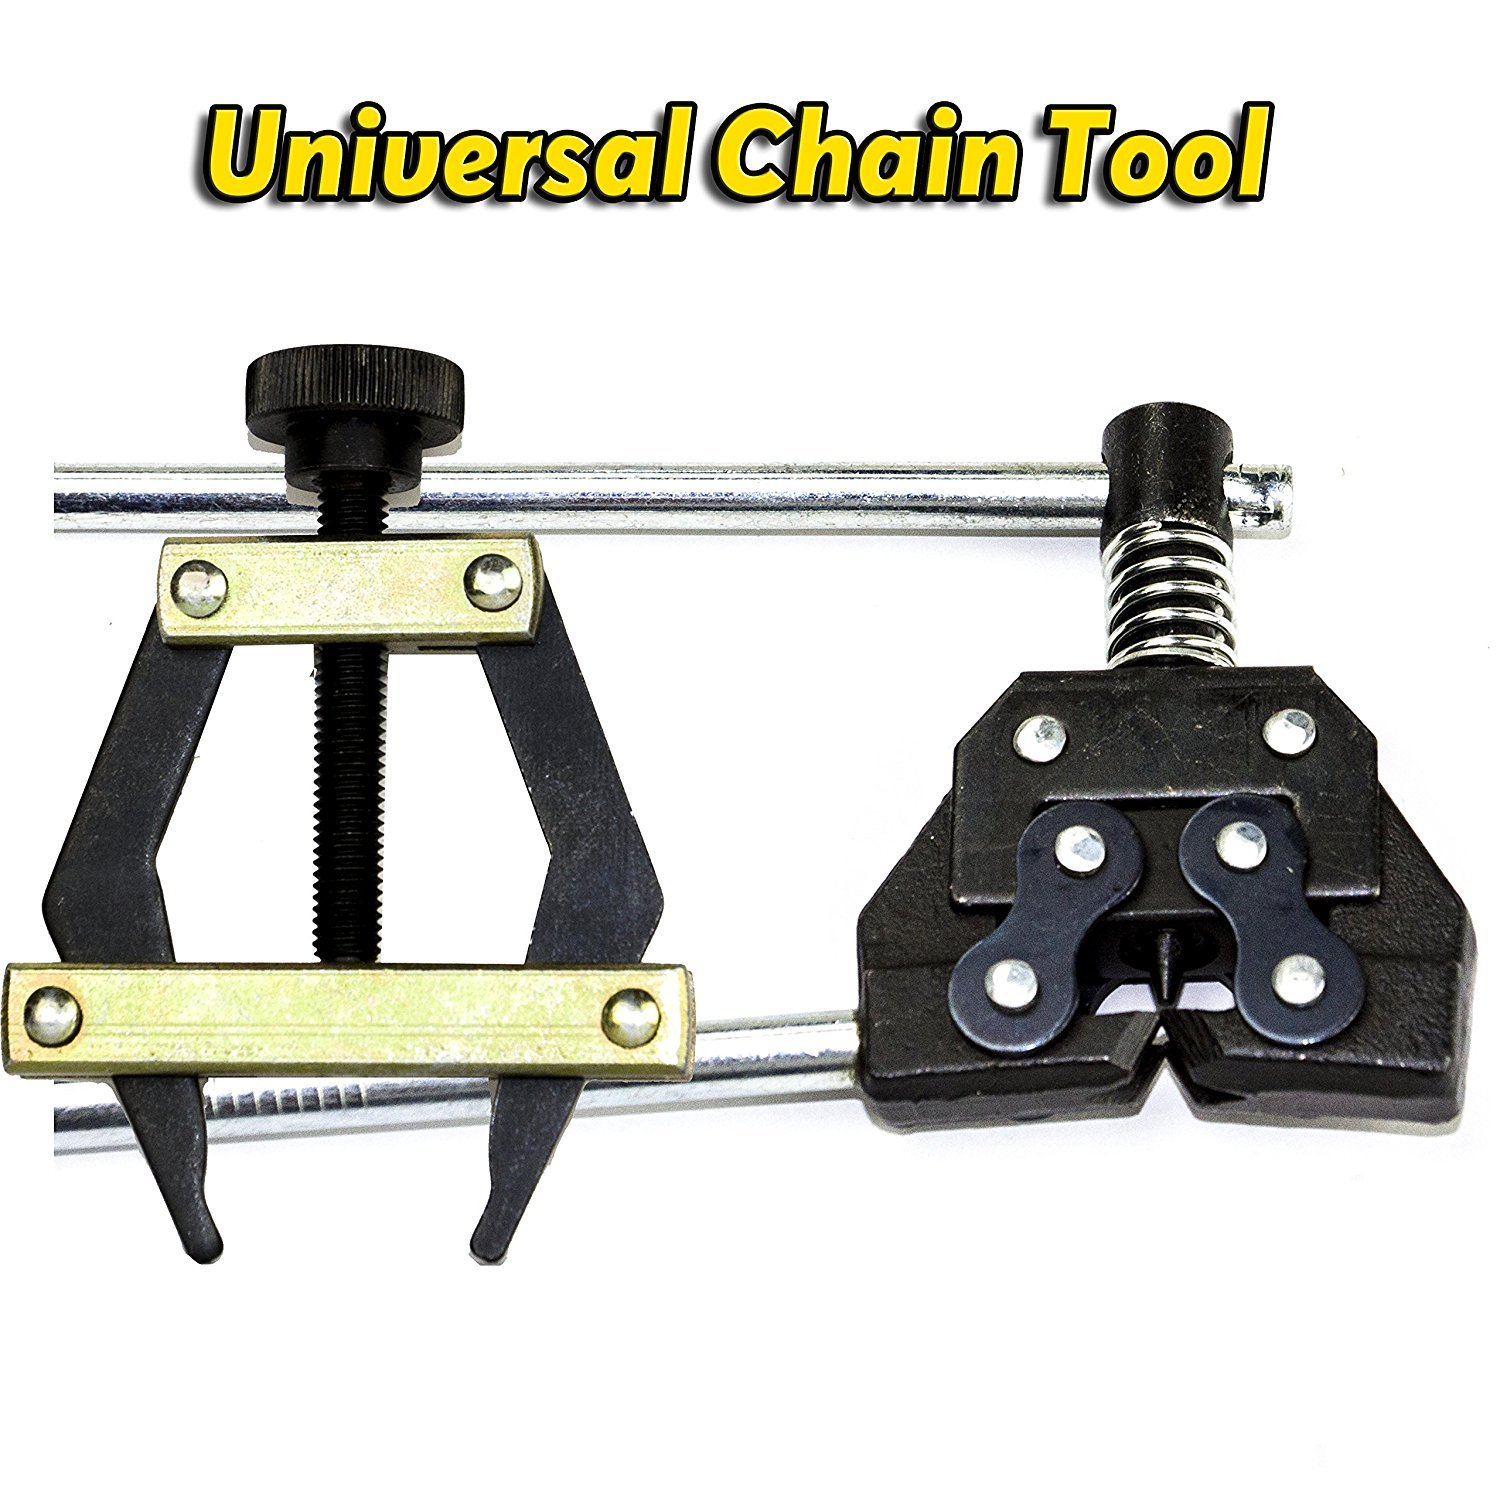 Roller Chain Tools Kit 25-60 Holder/Puller+Breaker/Cutter, Bicycle, Motorcycle by Jeremywell